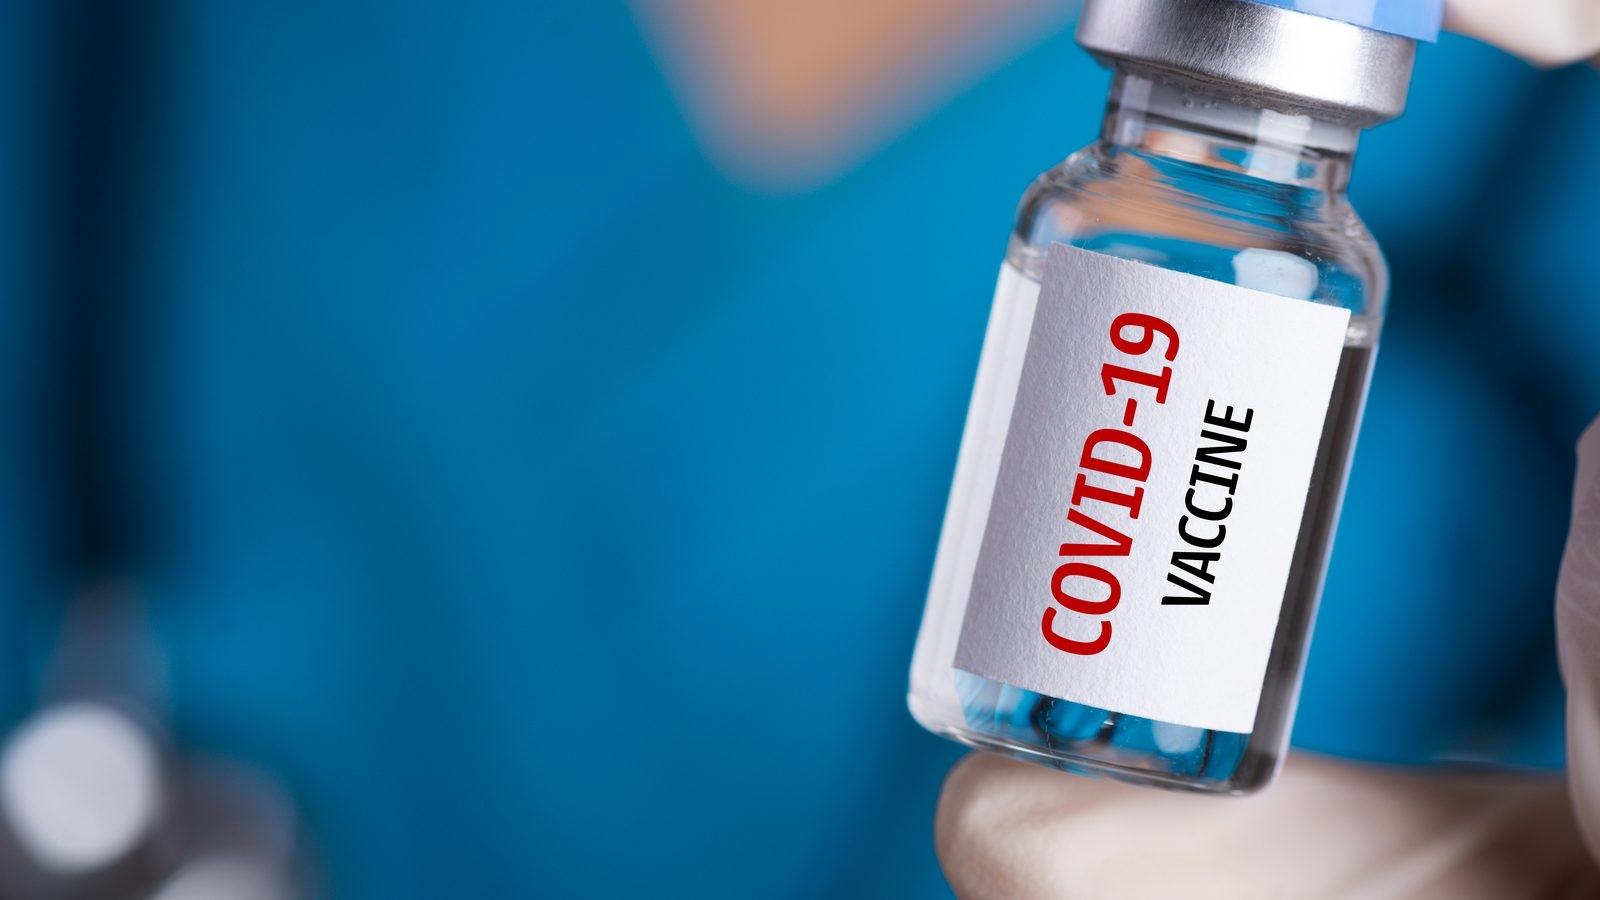 Vietnam reports 105 million doses of COVID-19 vaccines in the bag